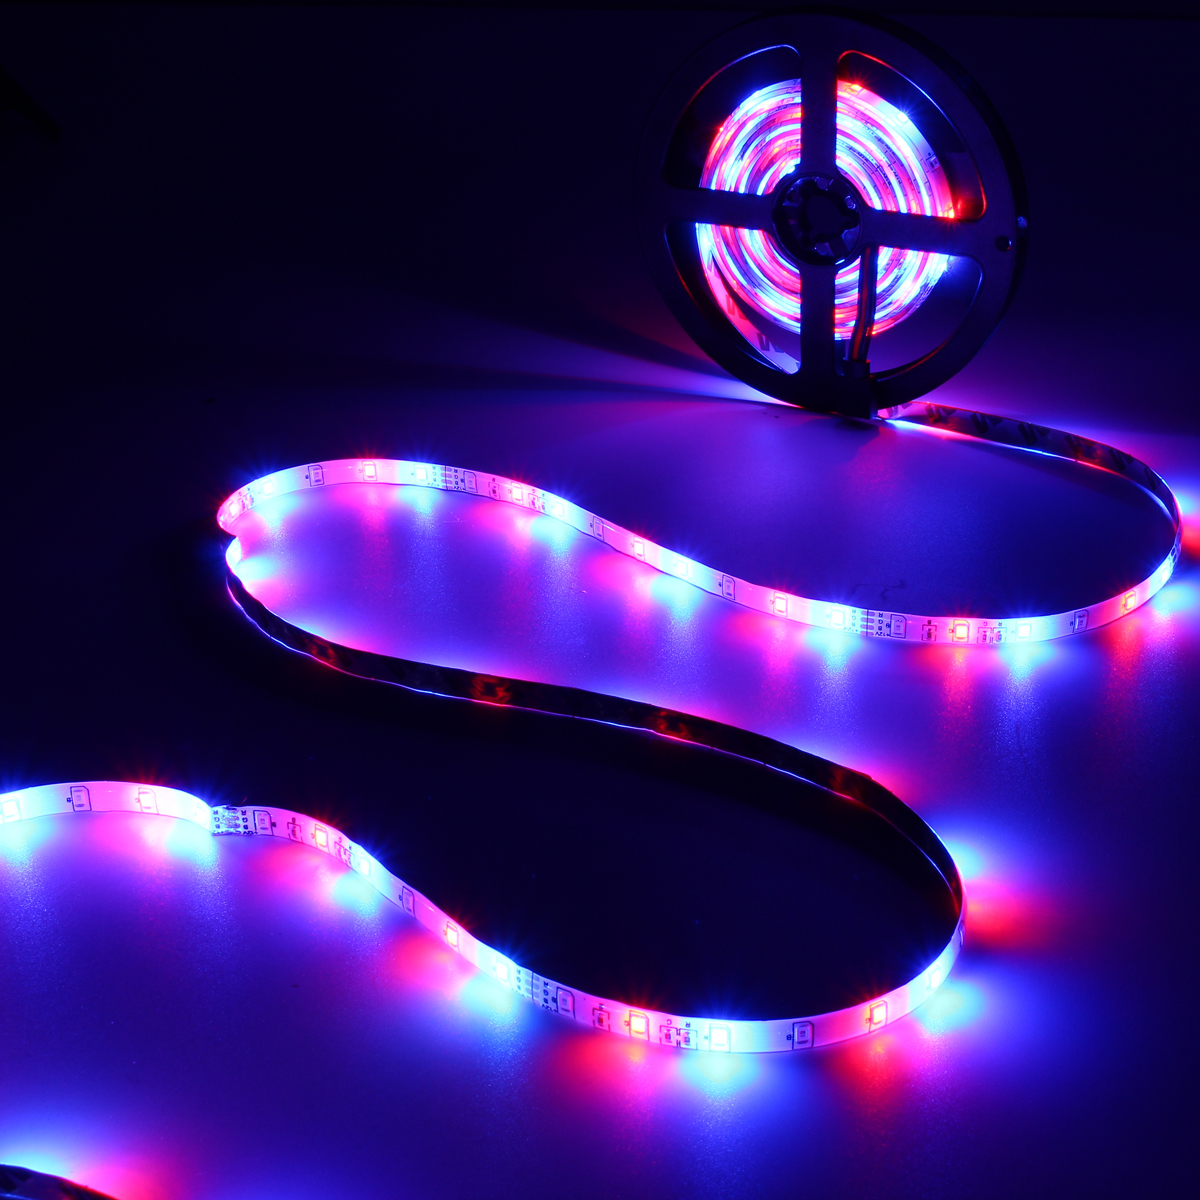 10m 600 led color changing smd3528 rgb led strip tape rope light kit b9e7c0fa ee29 41e4 8ab0 90ea8ad7fb6bg aloadofball Image collections